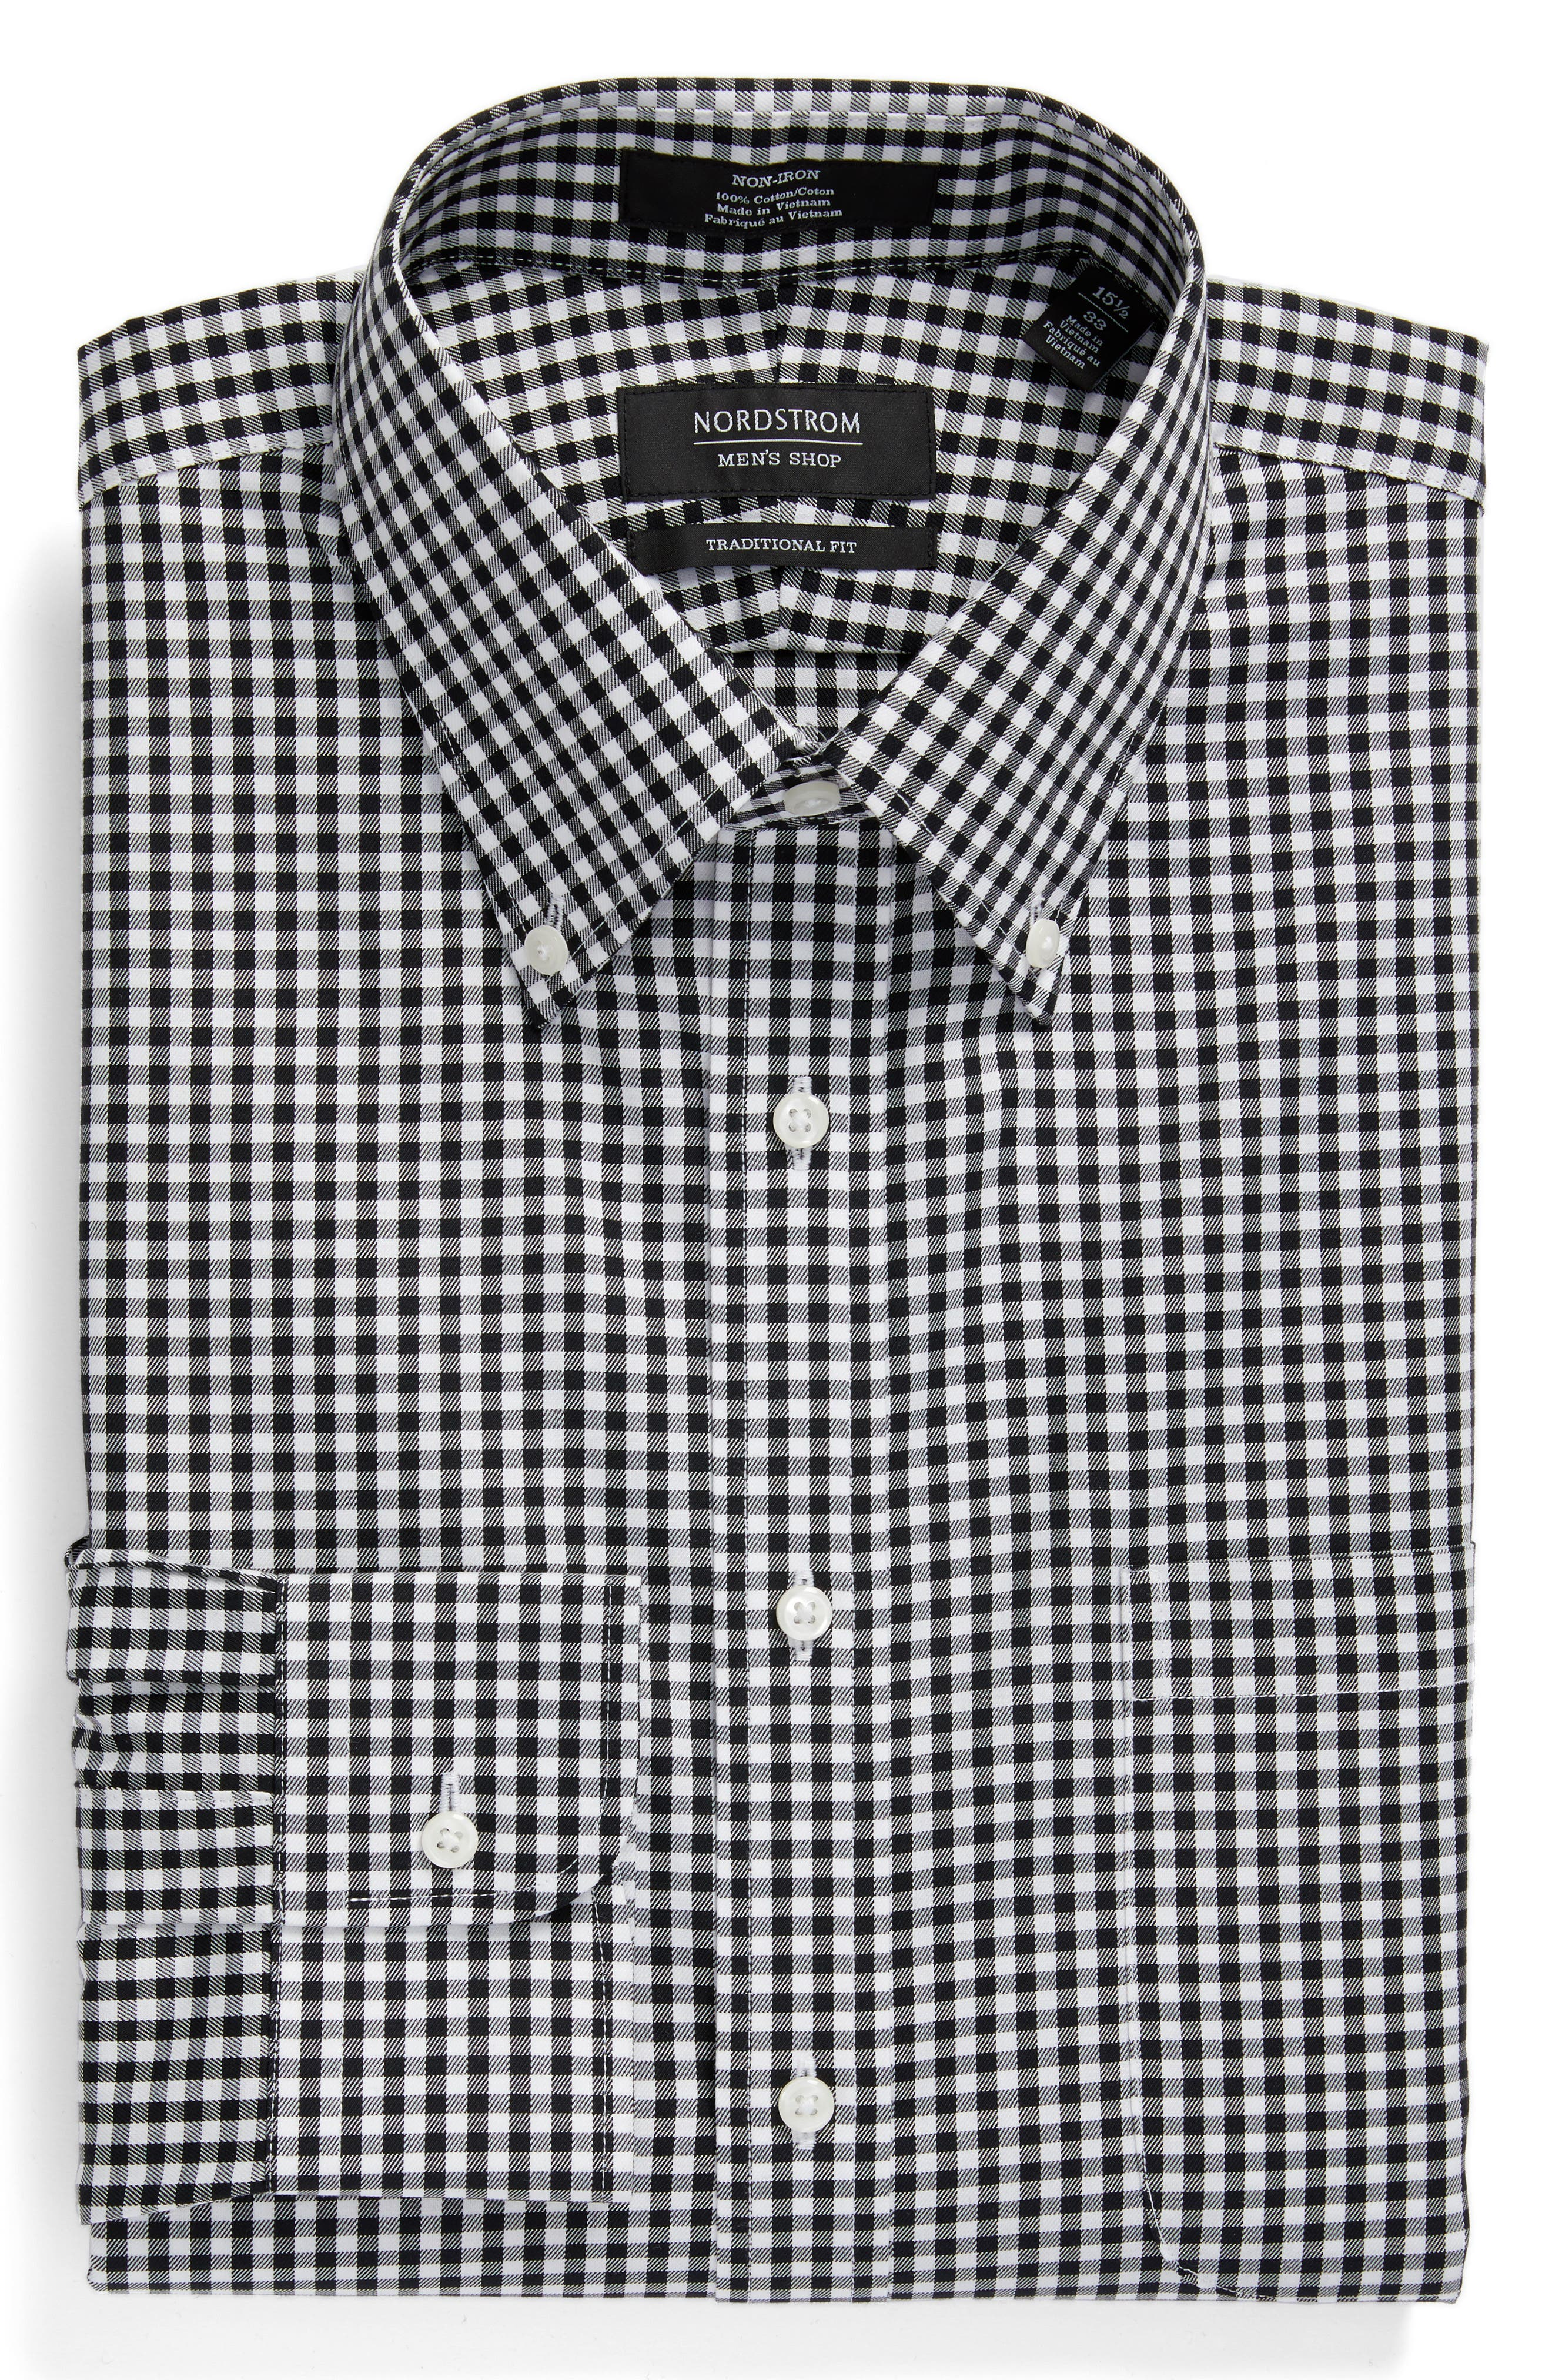 Men's Black Button-Down Collar Dress Shirts | Nordstrom